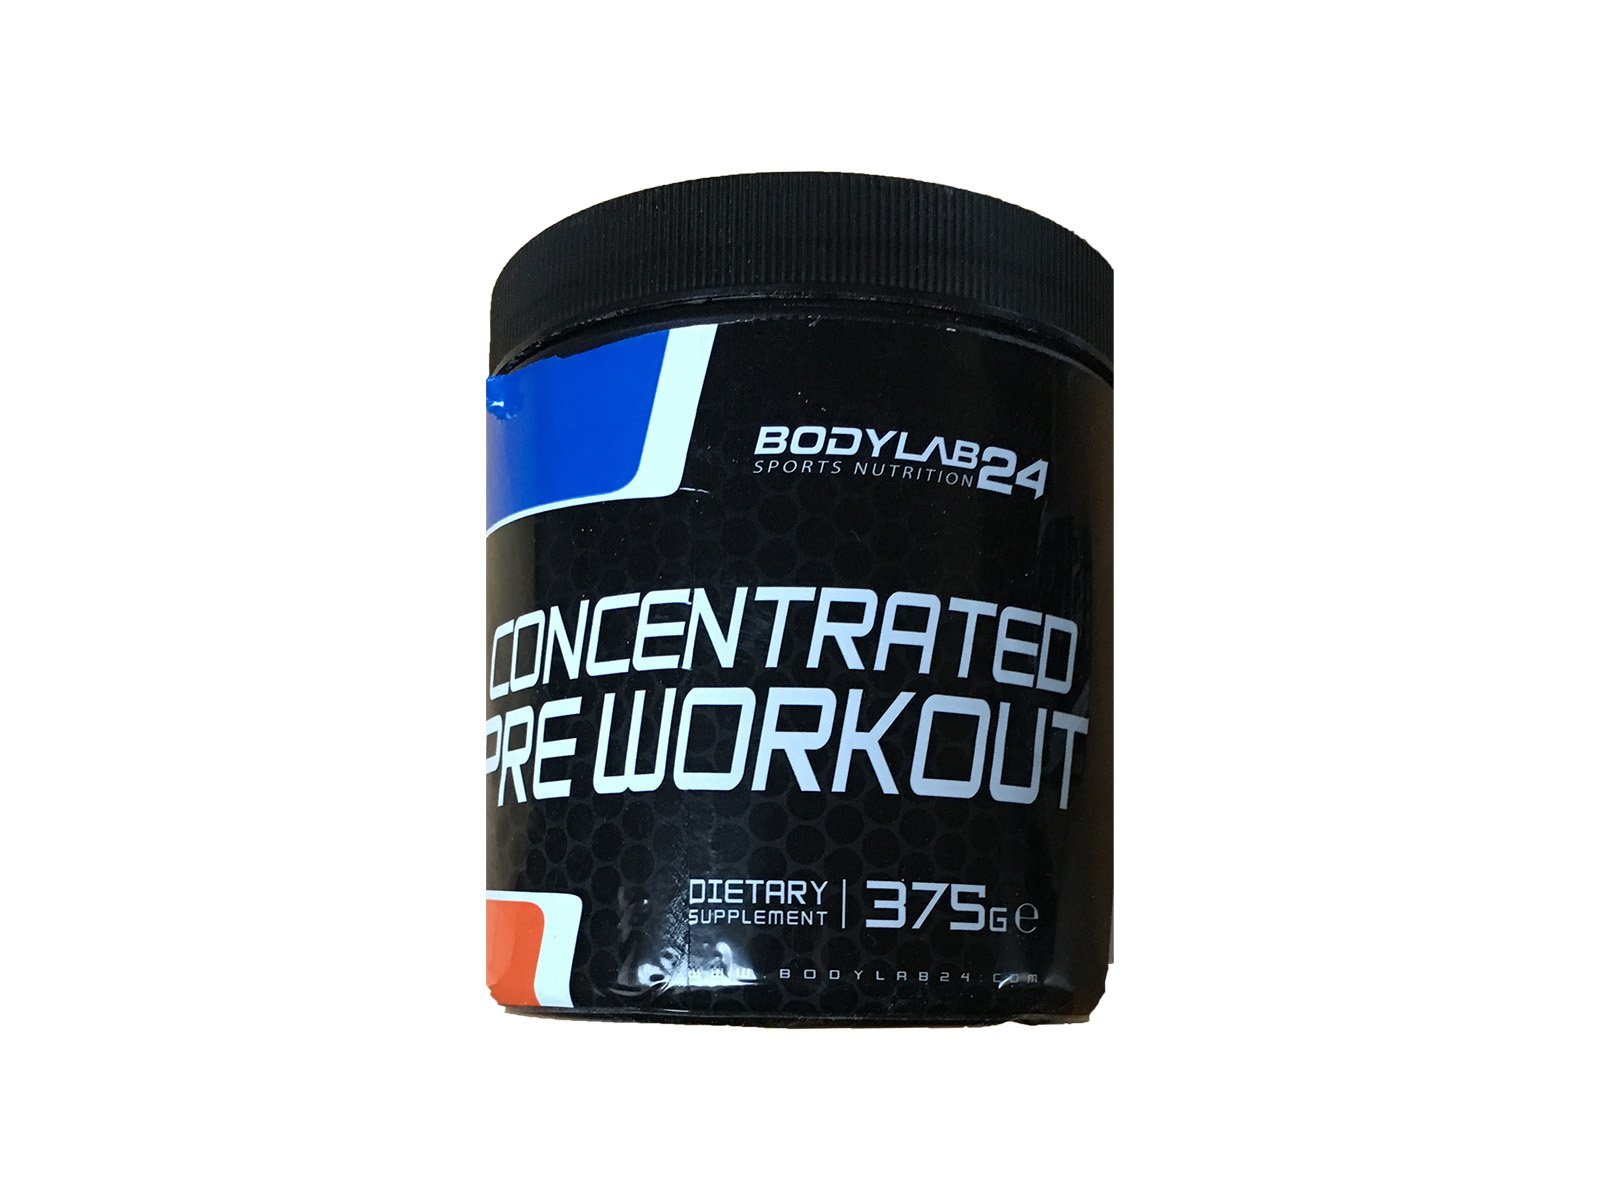 Bodylab24 Concentrated Pre Workout